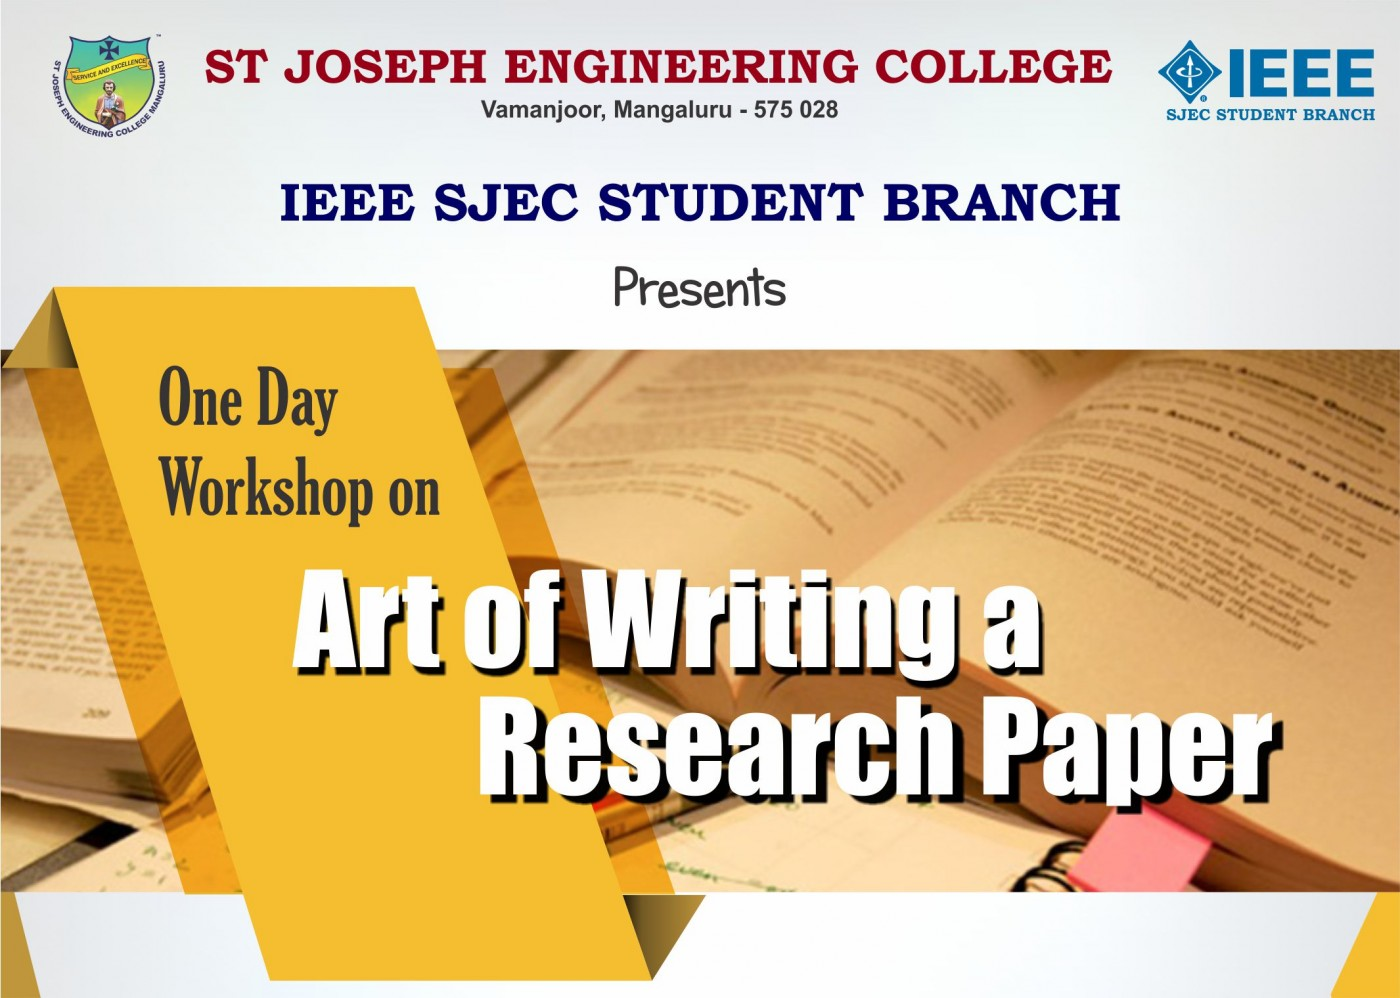 006 Workshop Banner Writing Of Research Fascinating Paper Great Pdf Harvard Style Sample 1400